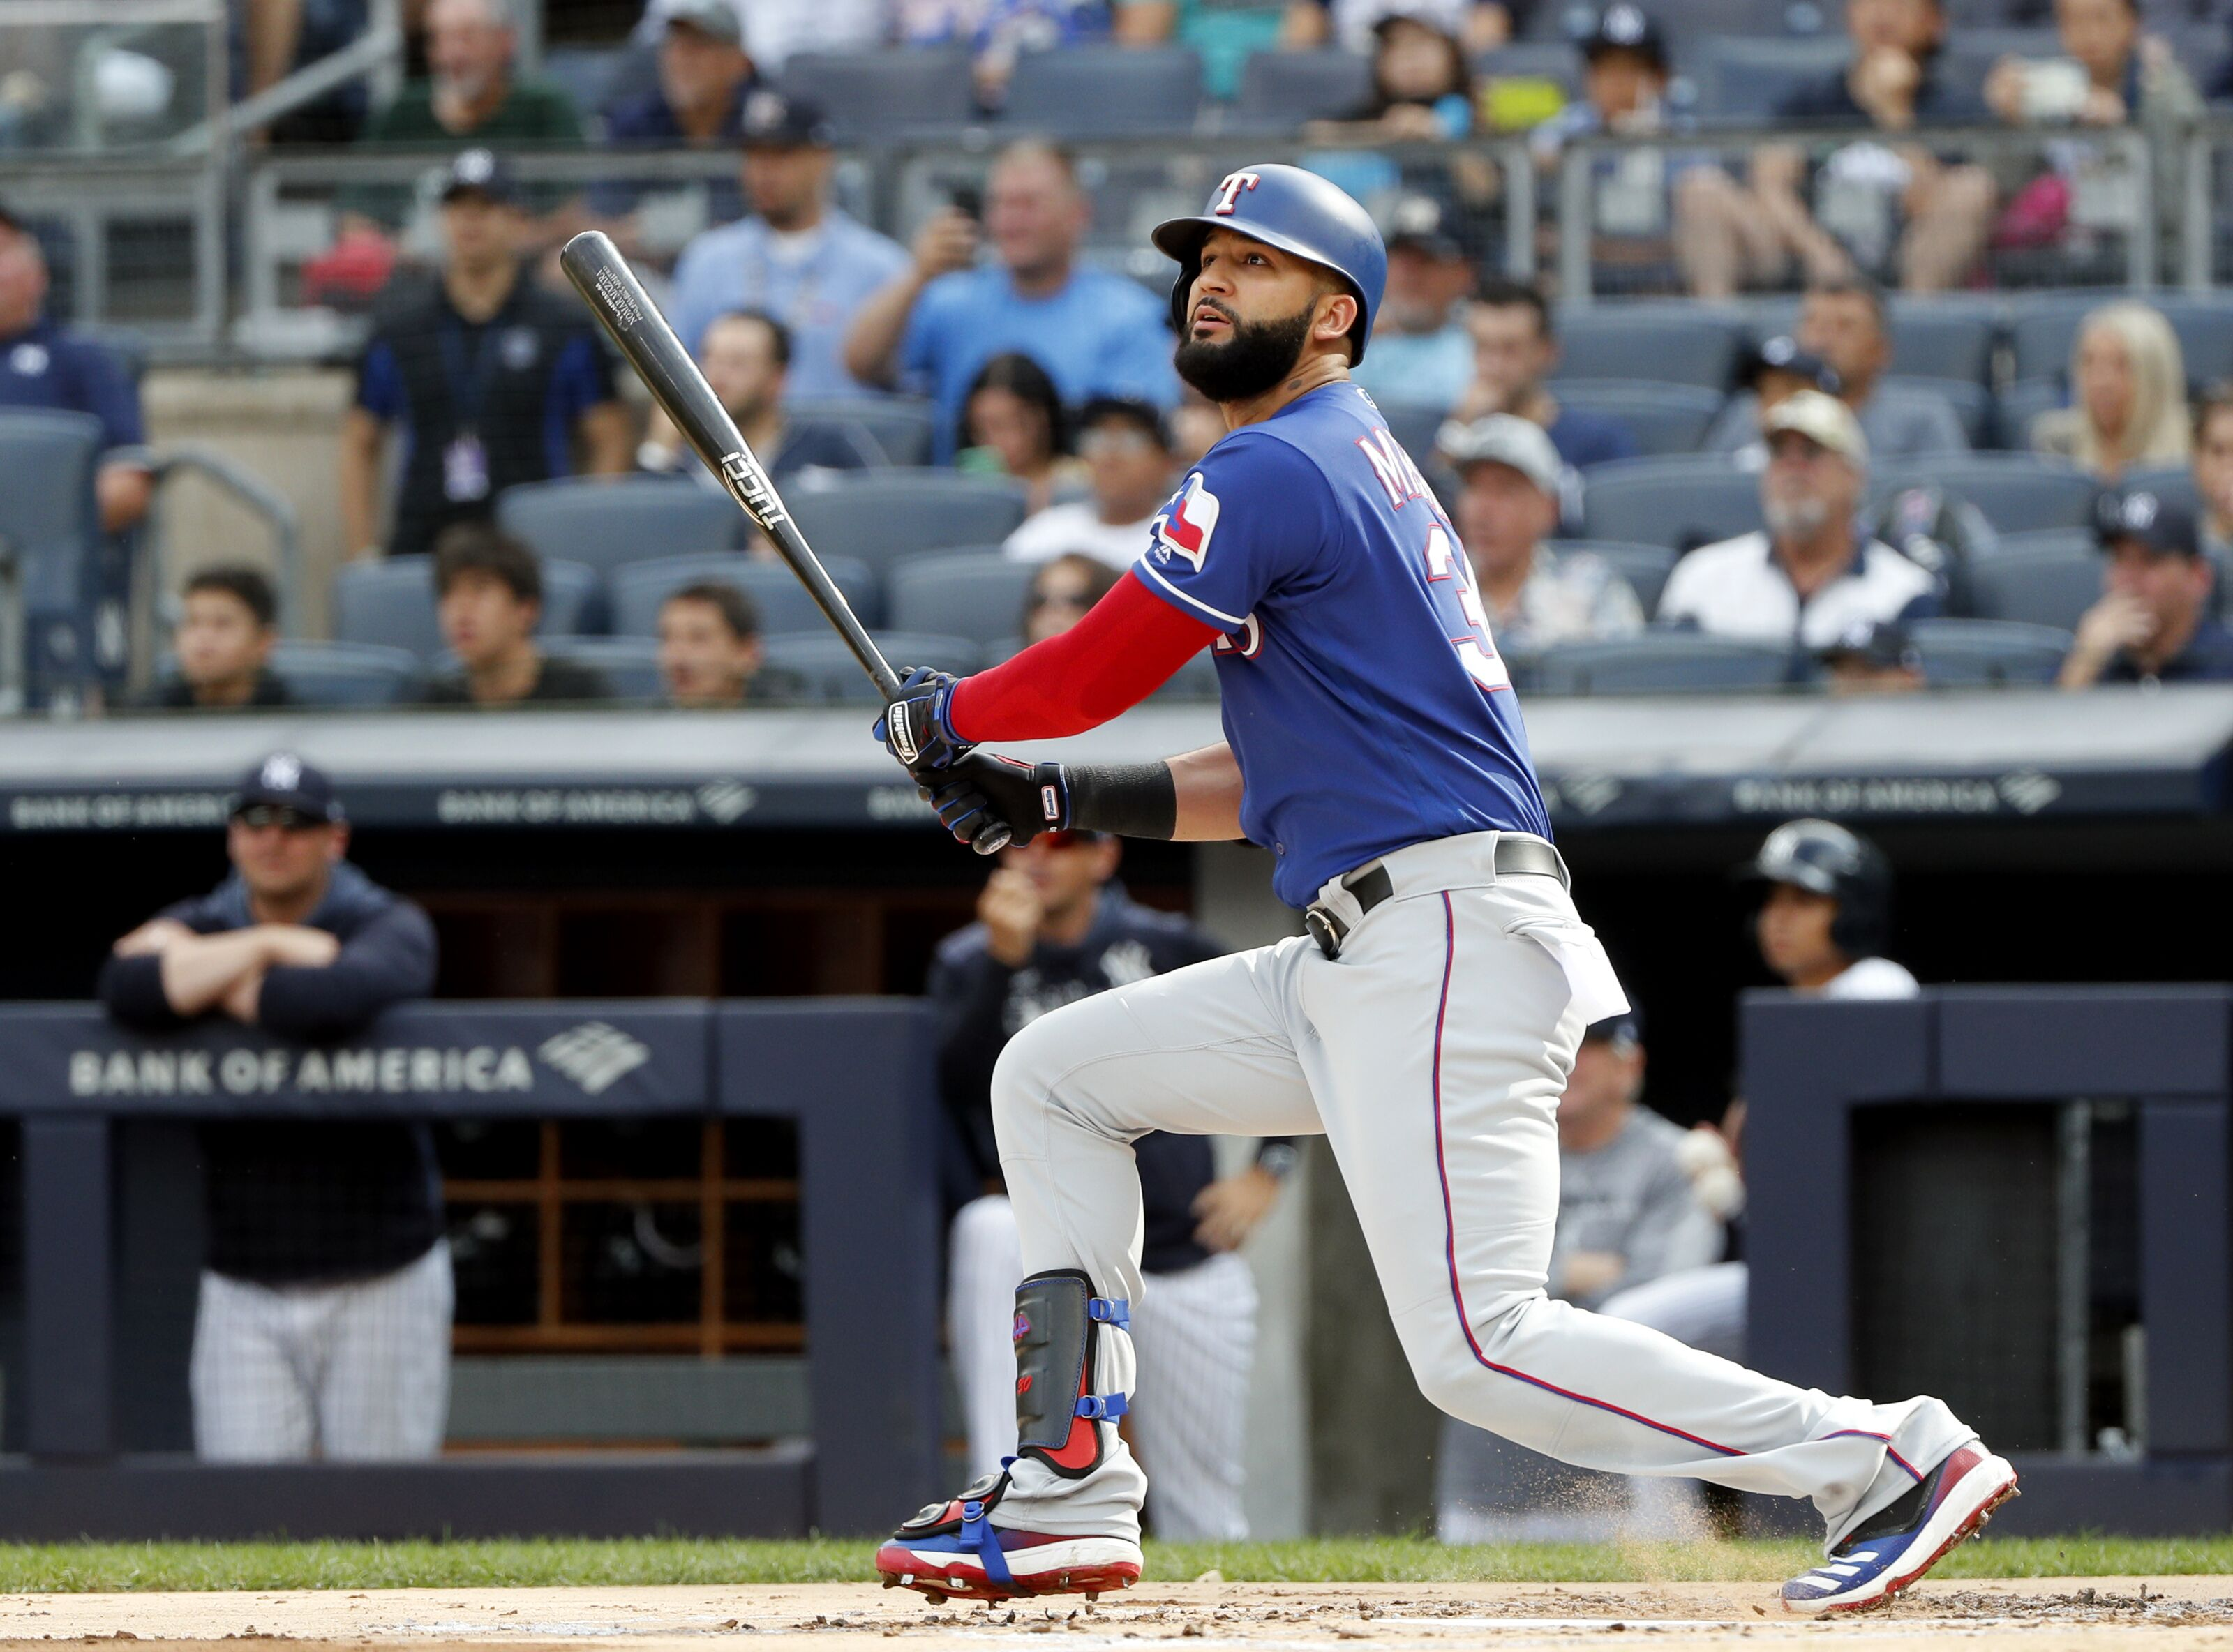 Why did the White Sox trade for Nomar Mazara?